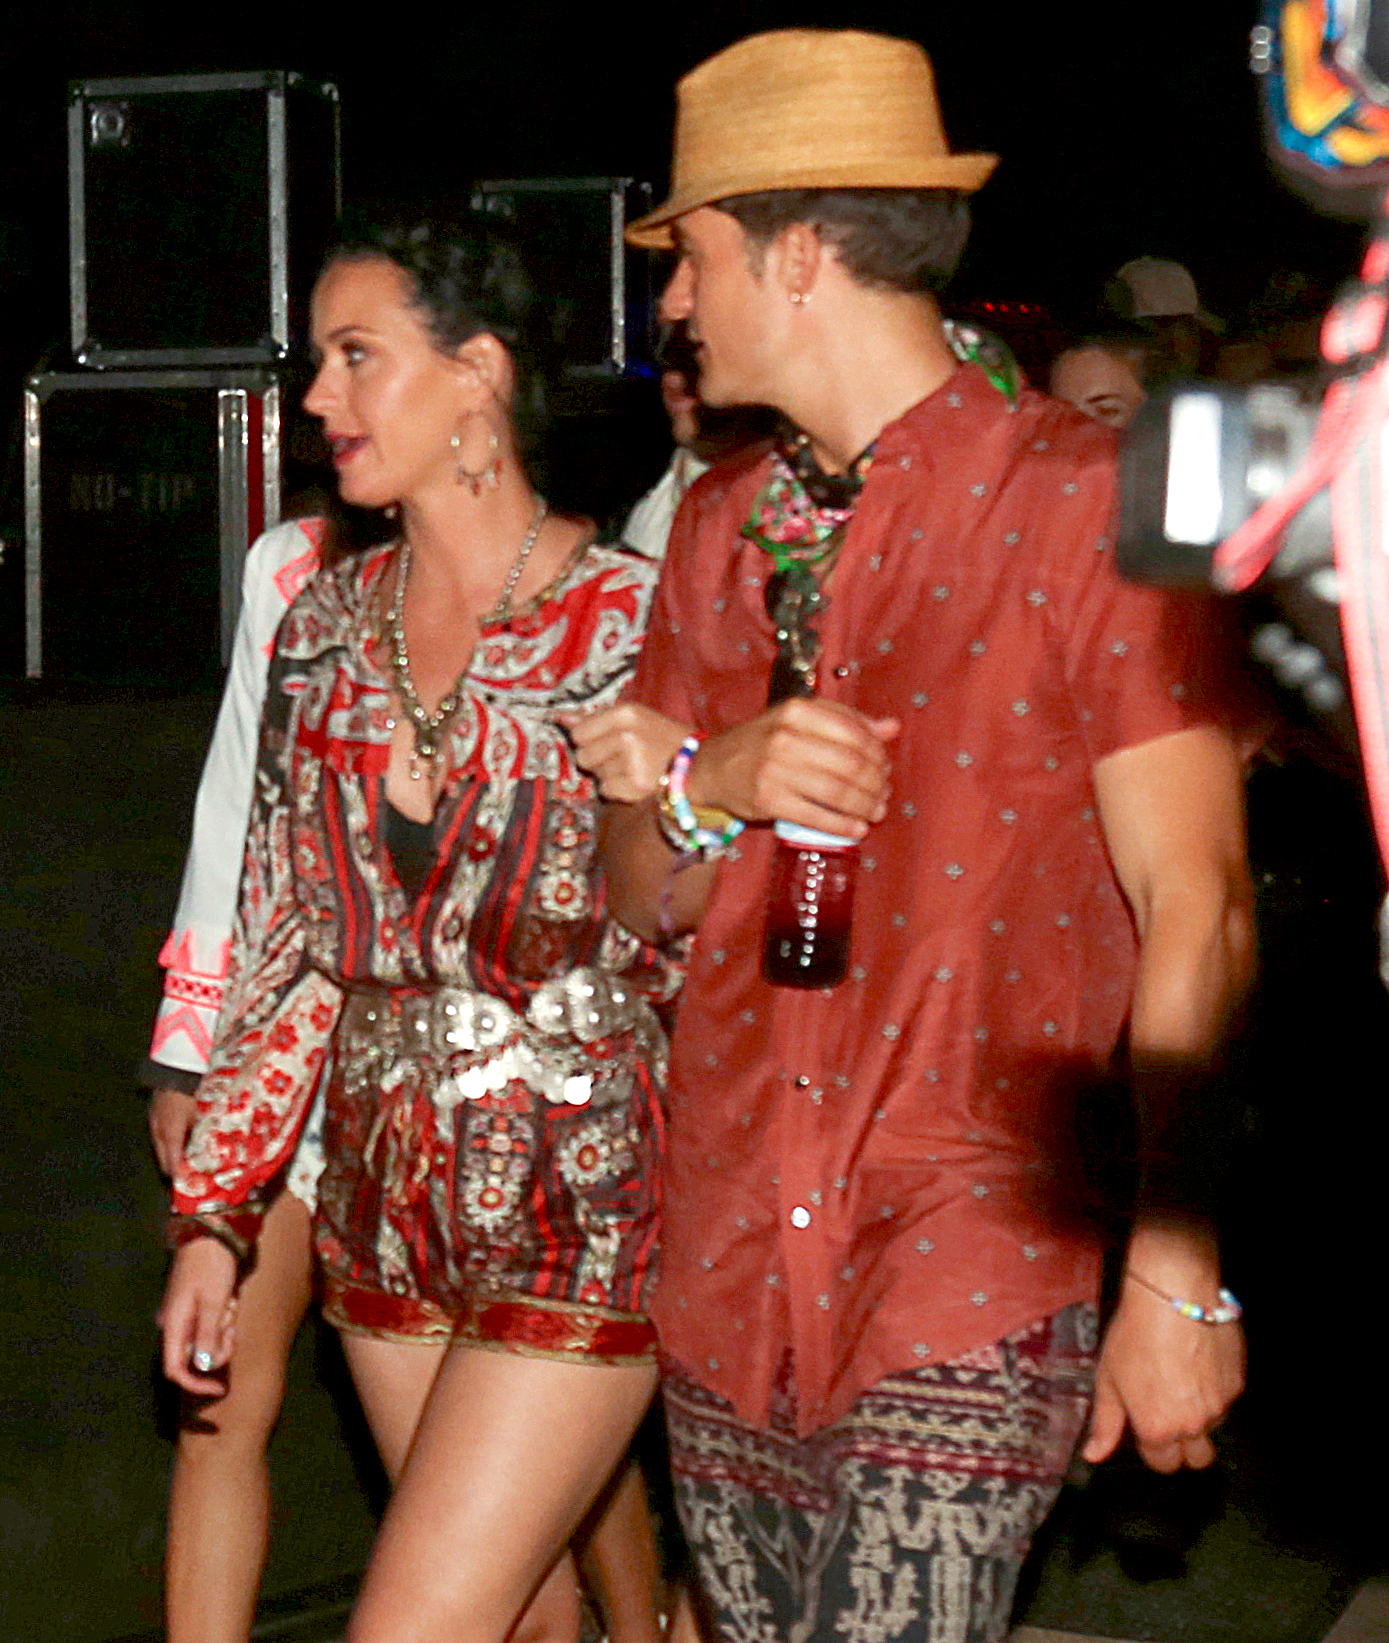 katy-perry-orlando-bloom-coachella - The American Idol judge and the Pirates of the Caribbean actor linked arms at the festival in 2016.